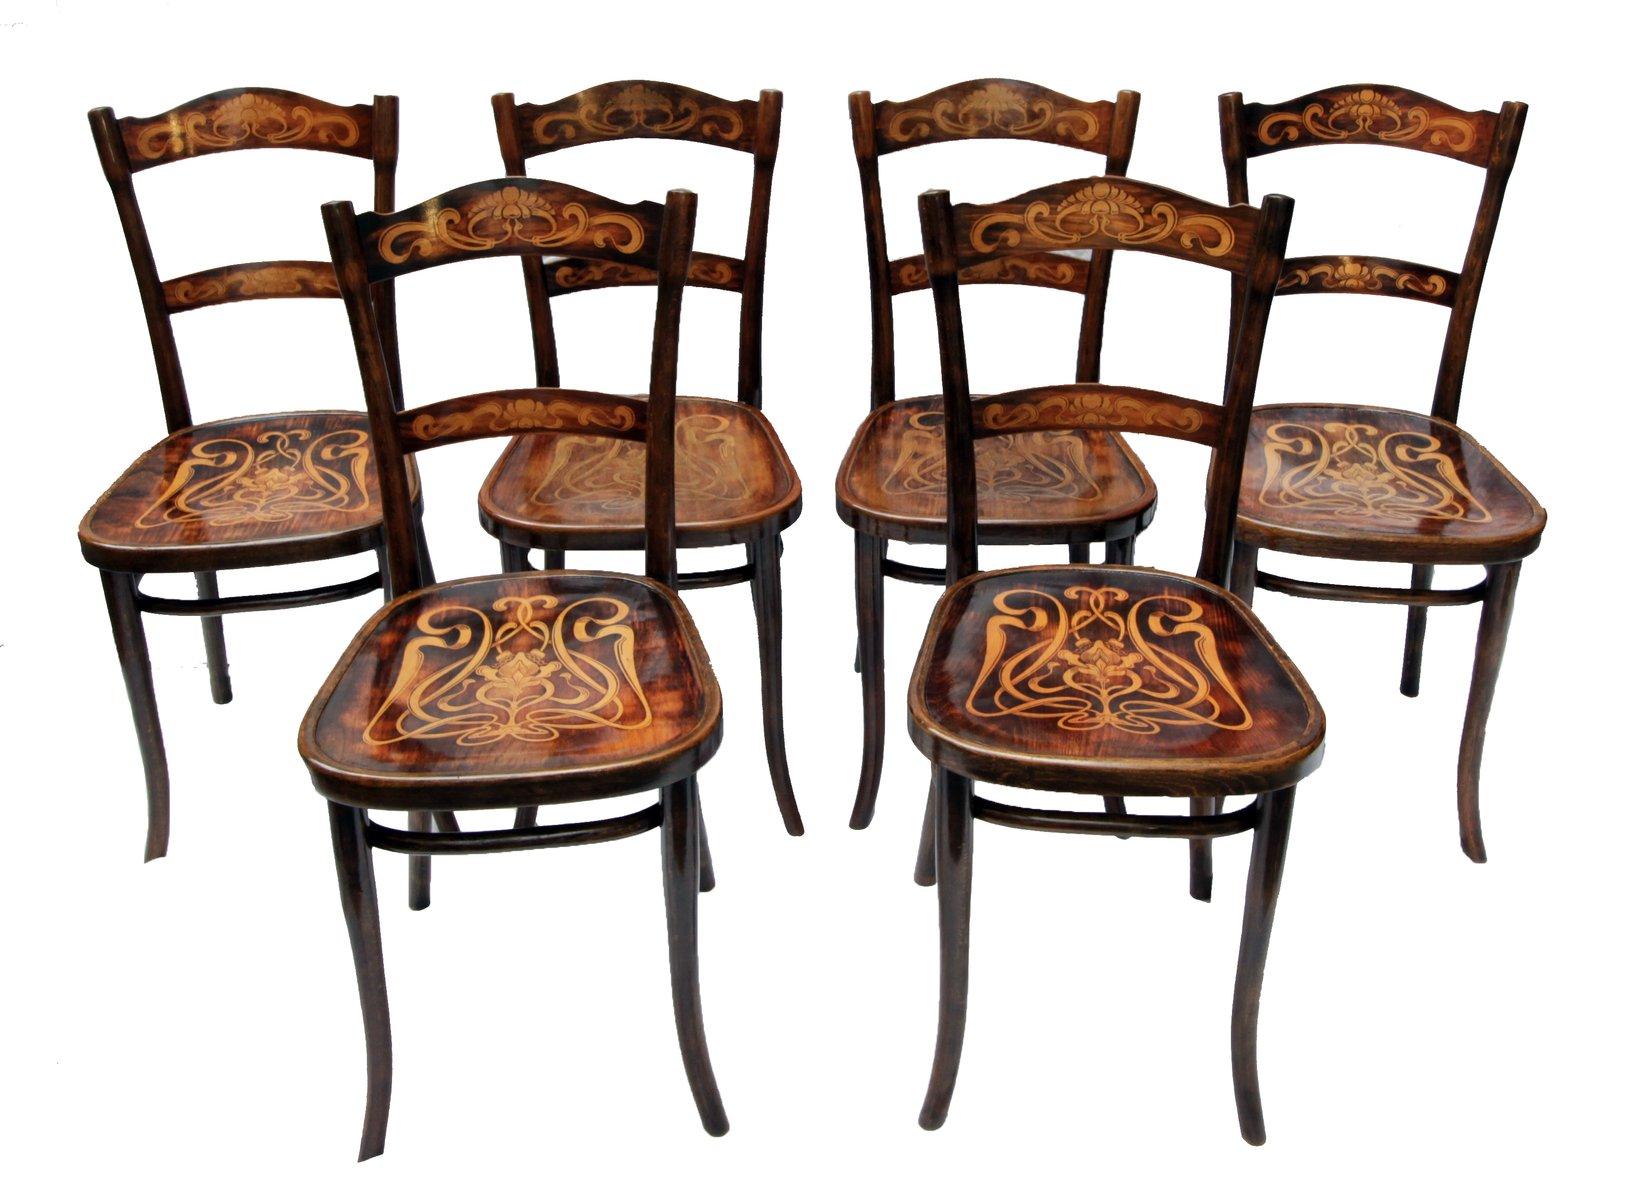 antique decorated bentwood dining chairs from thonet set of 6 for sale at pamono. Black Bedroom Furniture Sets. Home Design Ideas